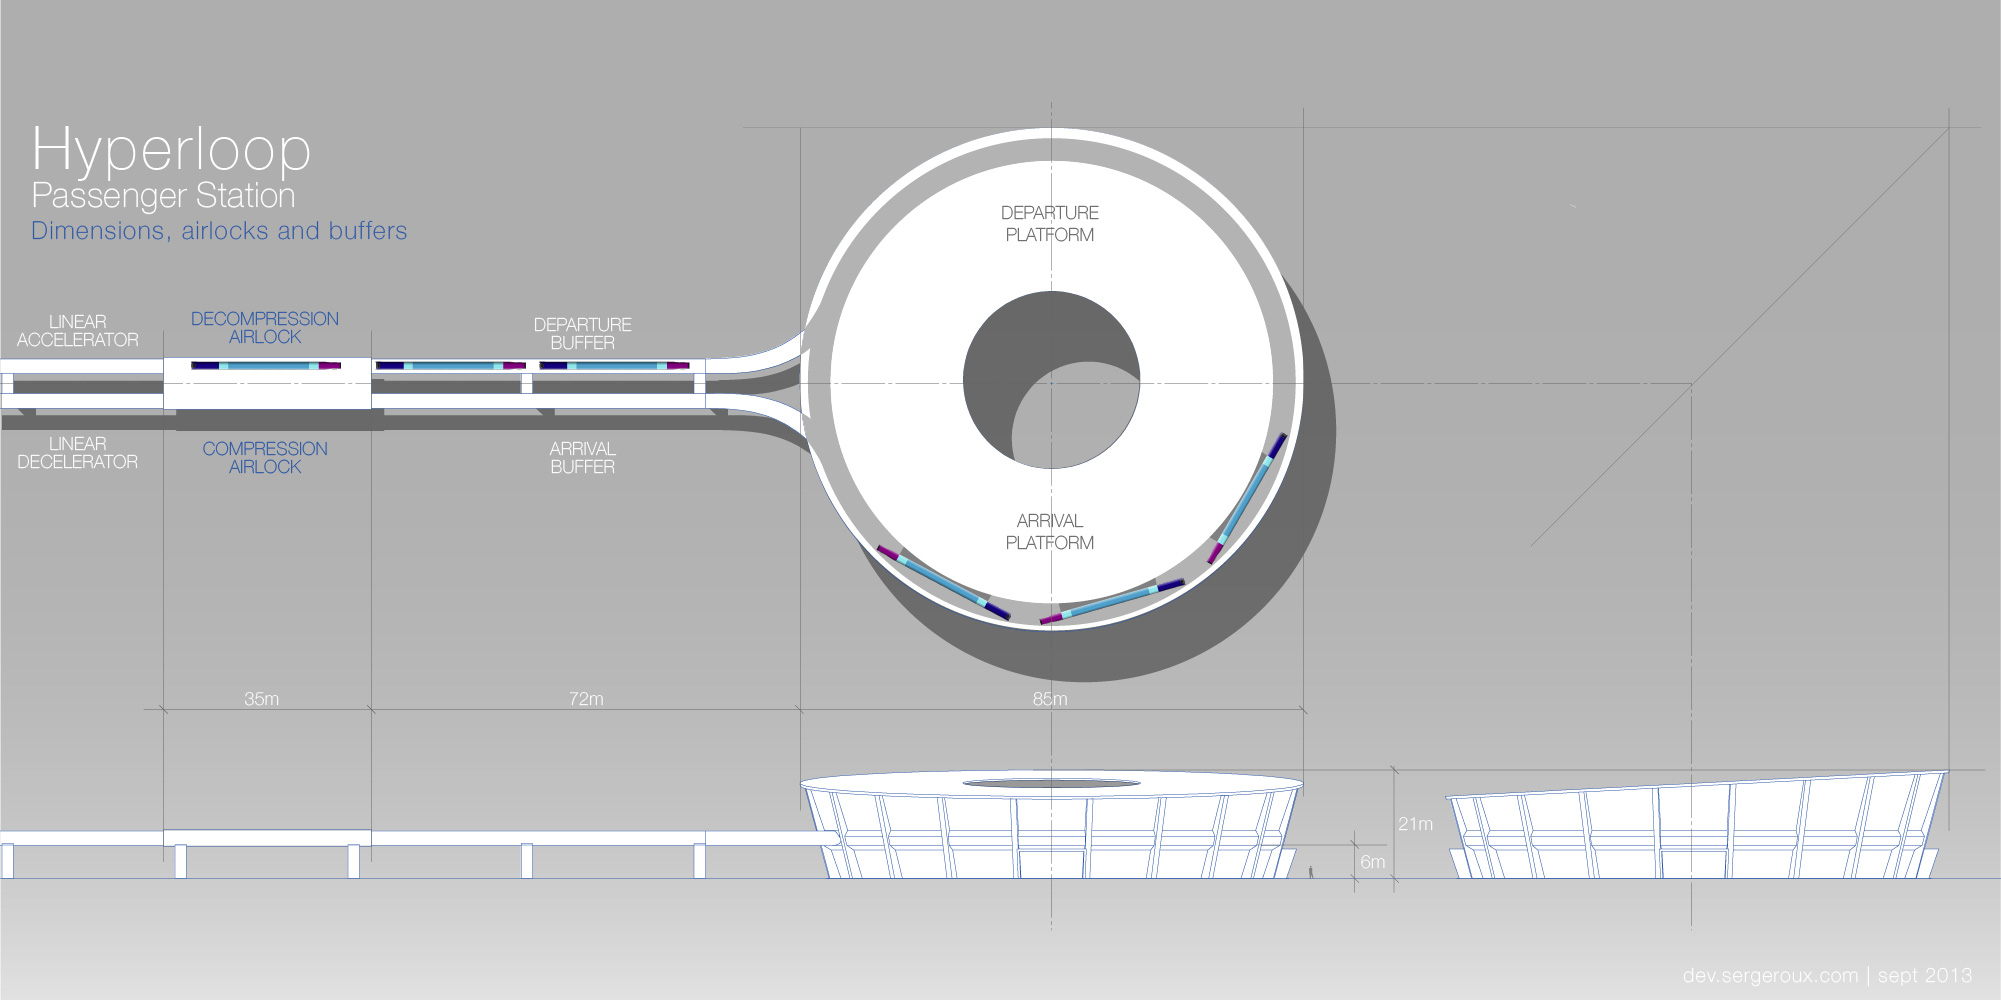 Hyperloop Station - Dimensions